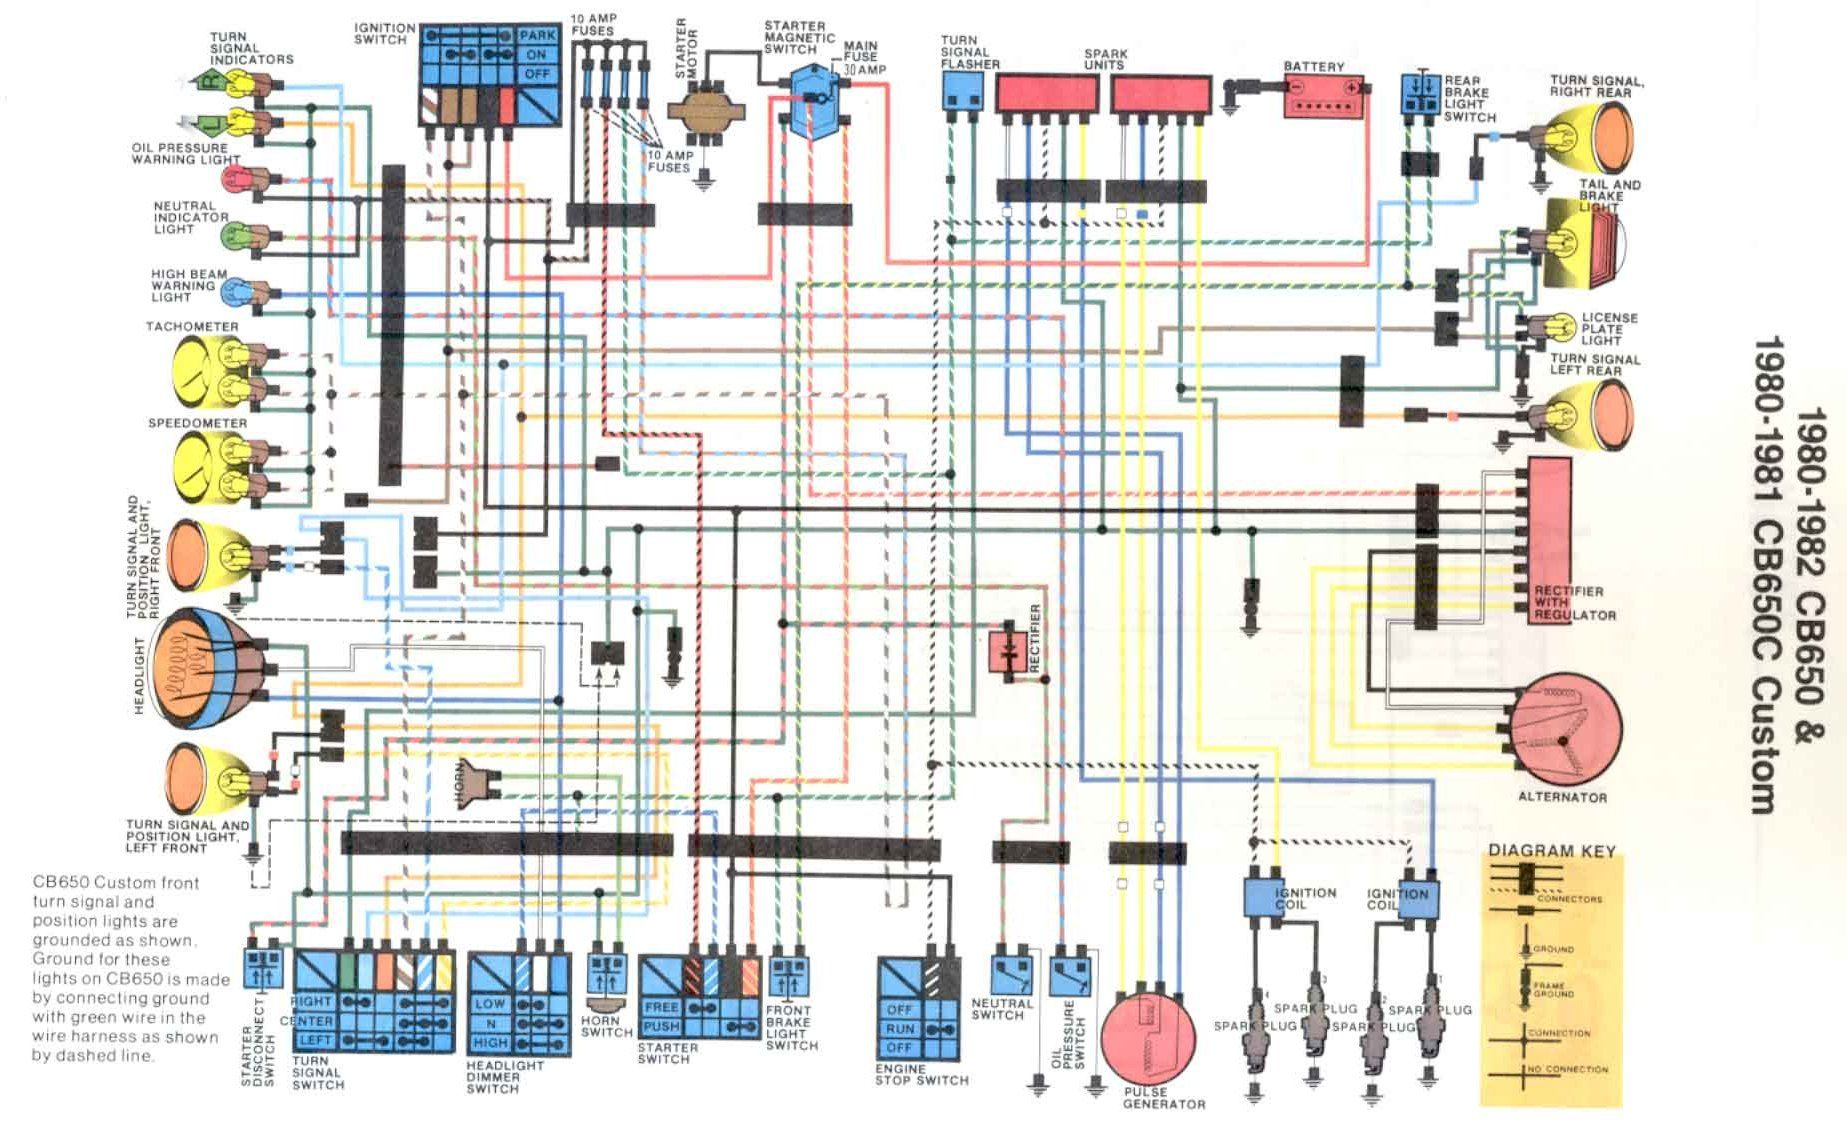 NN_8203] Wiring Schematic Diagram And Parts List For Kenmore Rangeparts  Model Download DiagramOnica Subc Cosa Winn Xortanet Salv Mohammedshrine Librar Wiring 101